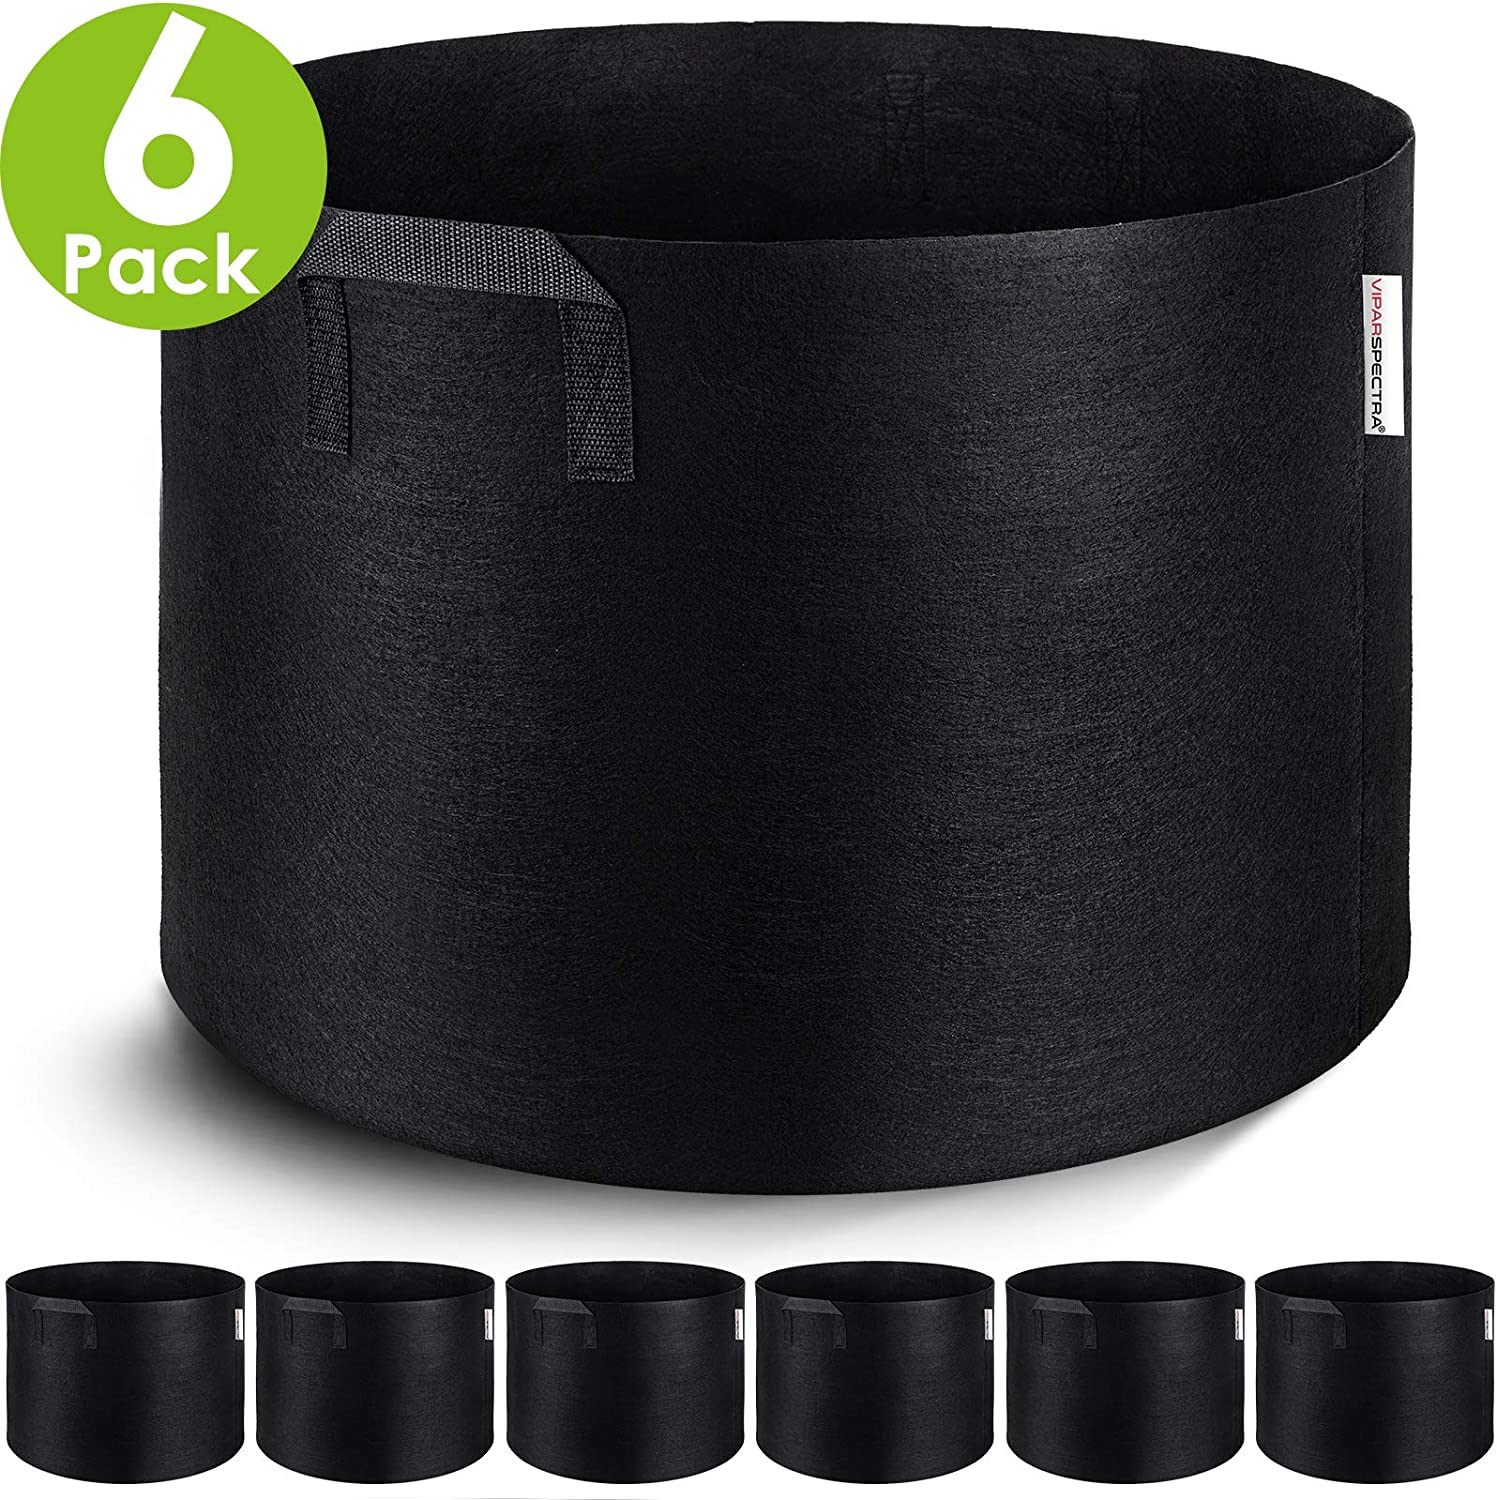 VIPARSPECTRA 6-Pack 20 Gallon Grow Bags - Thickened Nonwoven Aeration Fabric Pots Container with Heavy Duty Durable Handles for Garden Indoor Plants